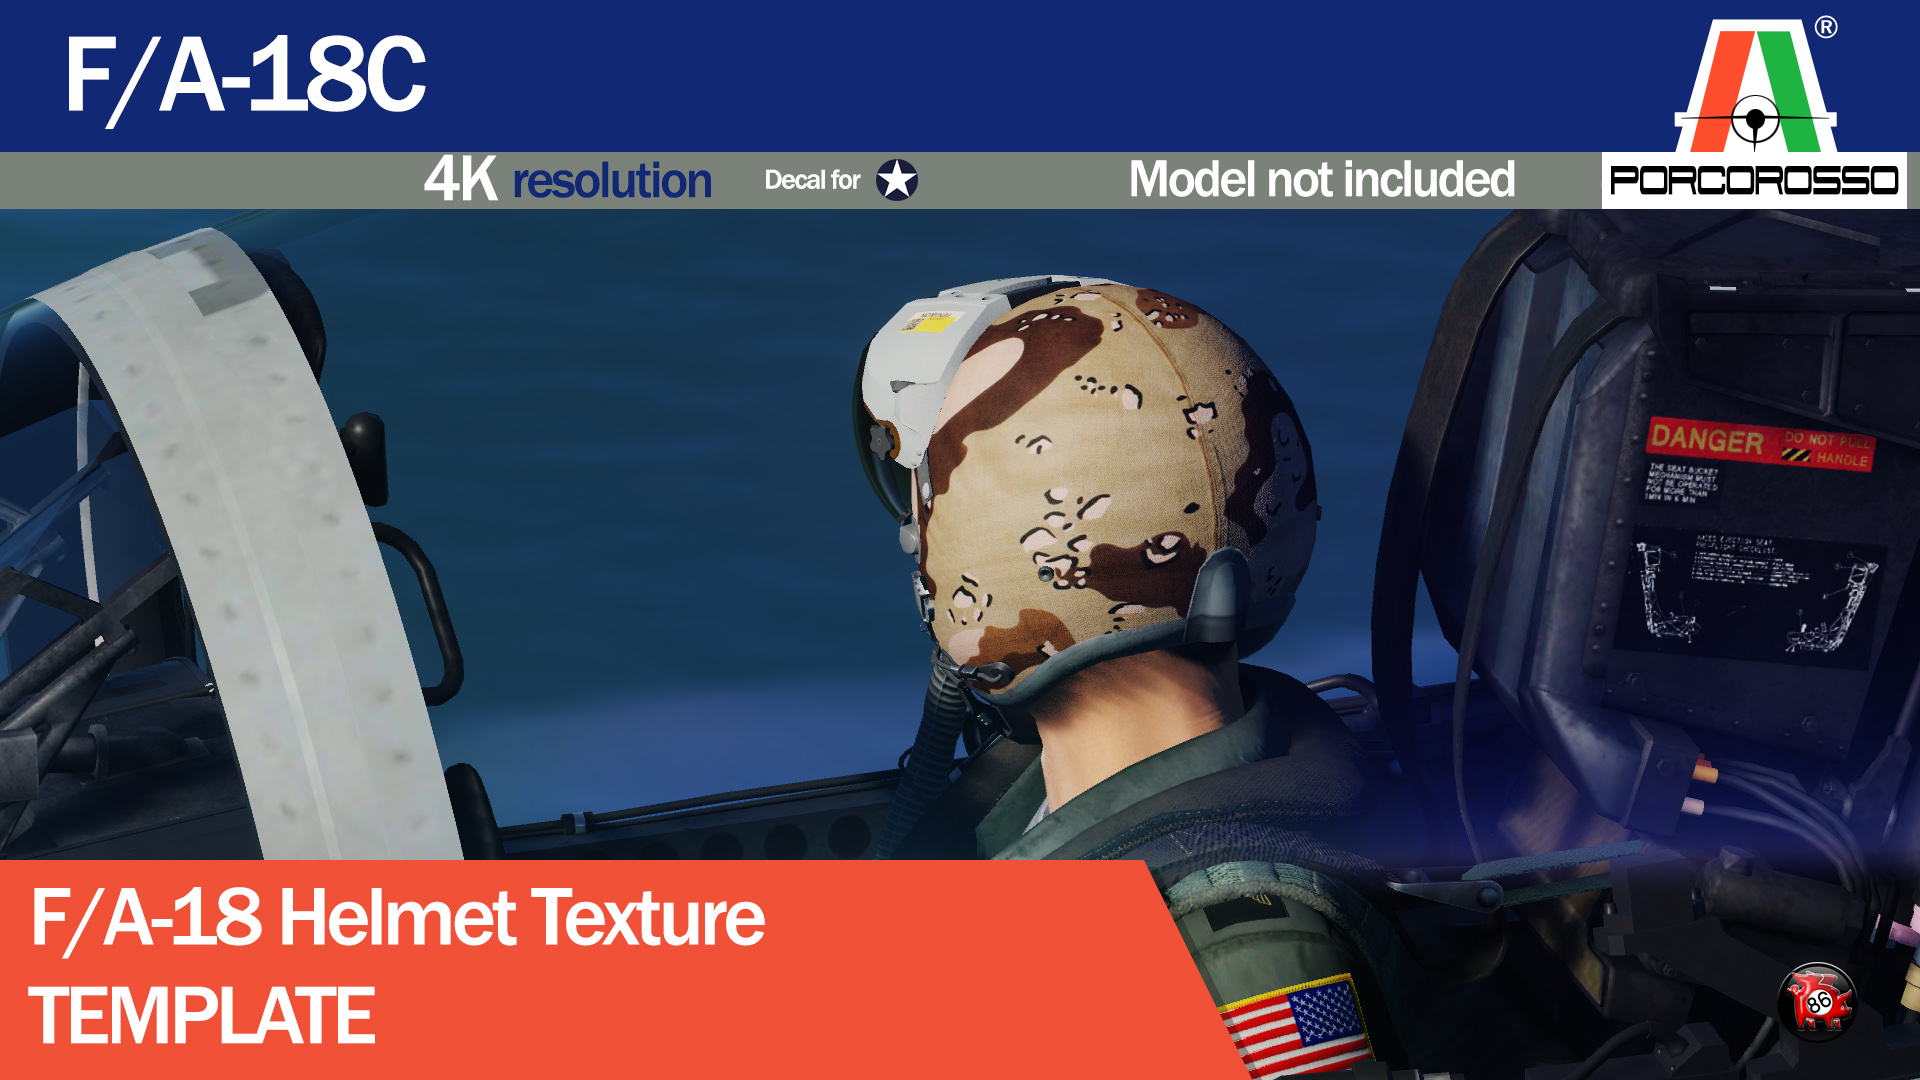 F/A-18C Helmet Texture TEMPLATE by PorcoRosso86